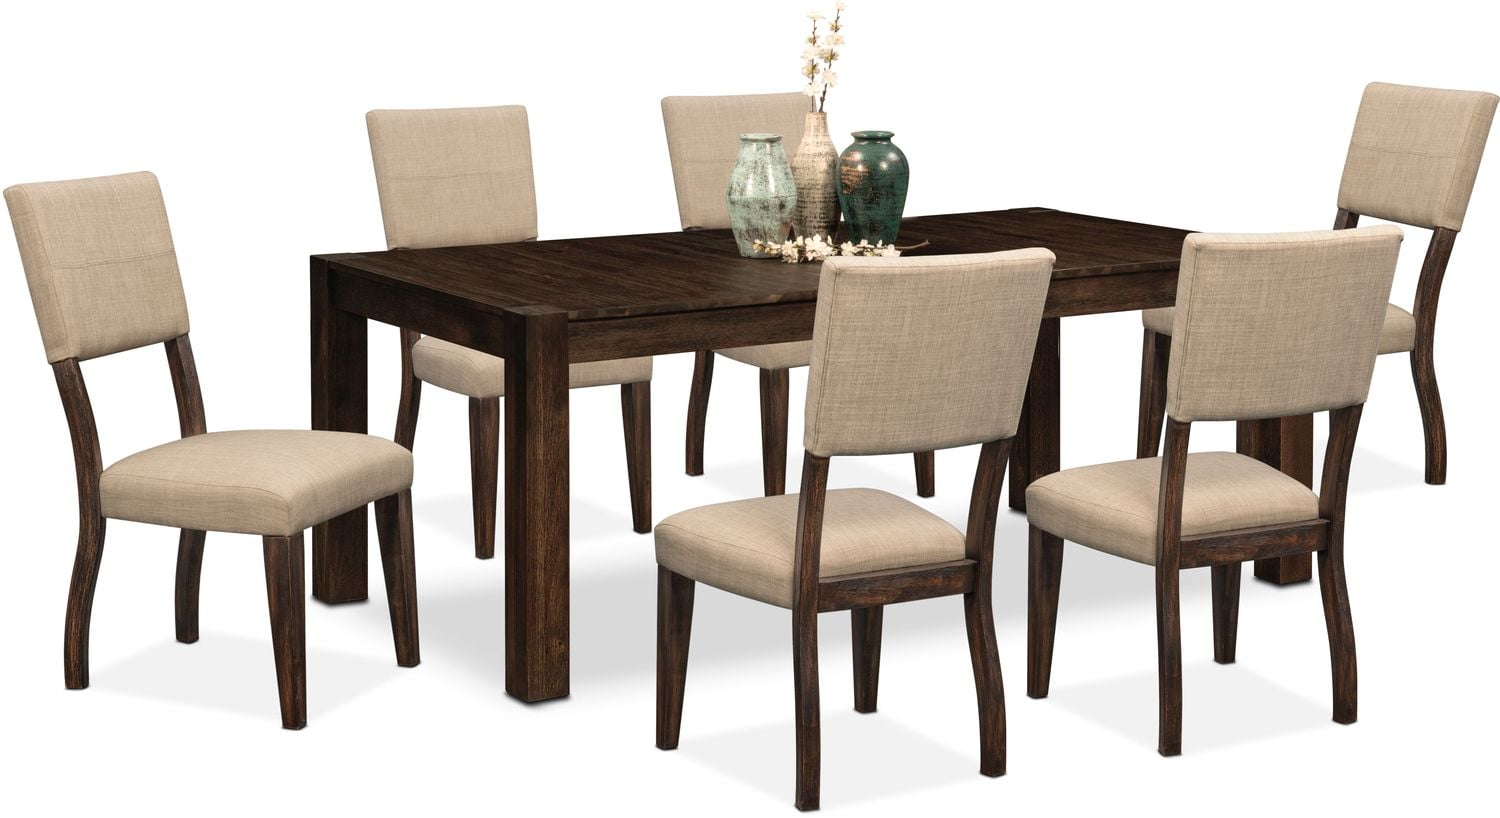 Dining Room Furniture   Tribeca Table And 6 Upholstered Side Chairs    Tobacco